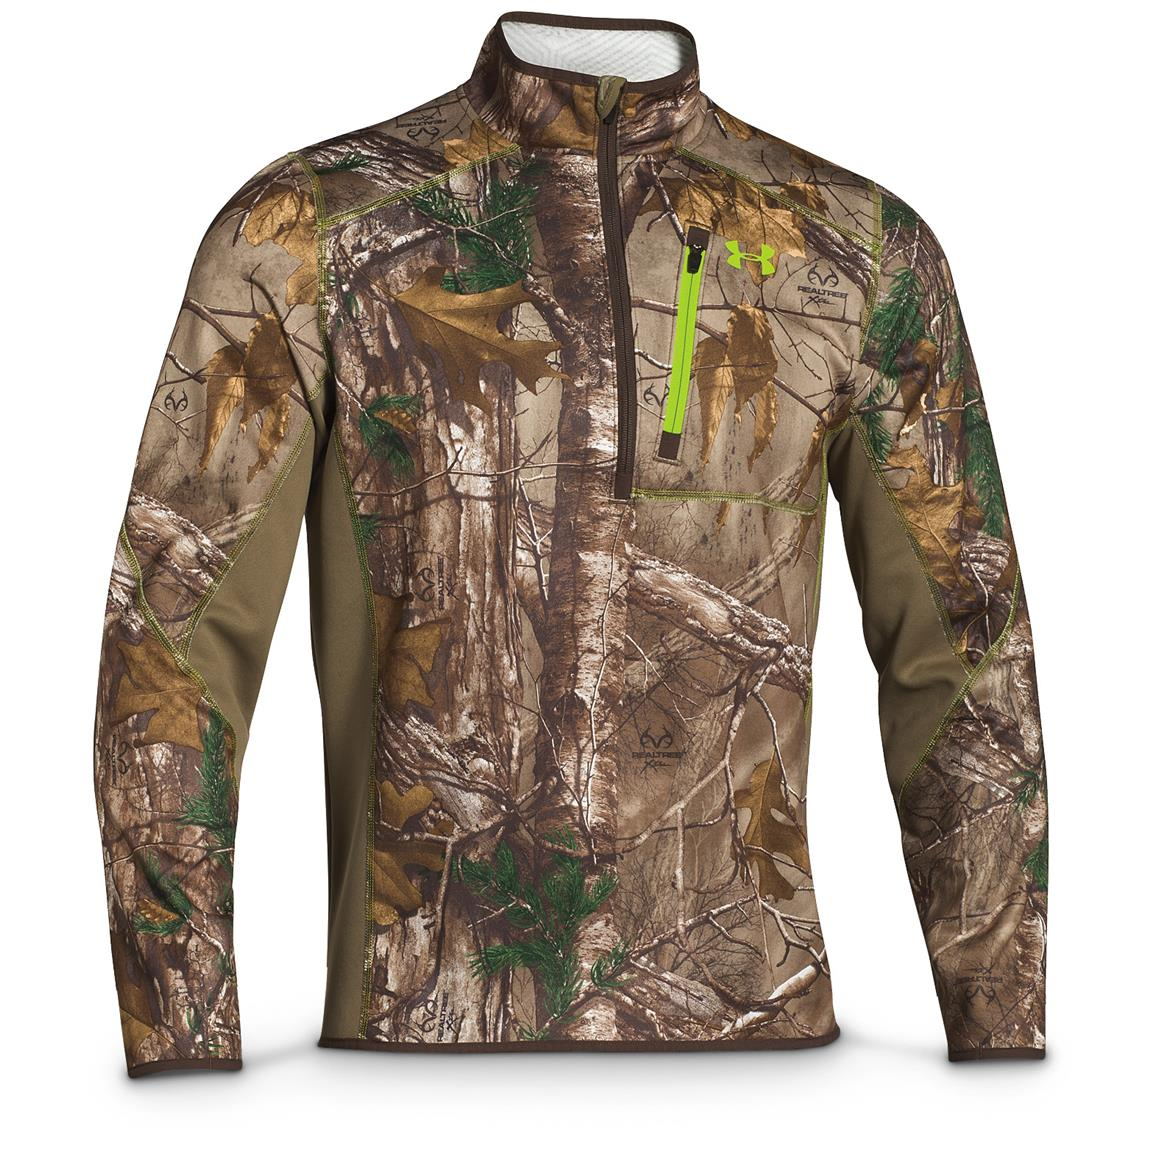 Under Armour Men's ColdGear Scent Control Fleece Hunting Jacket, Realtree Xtra